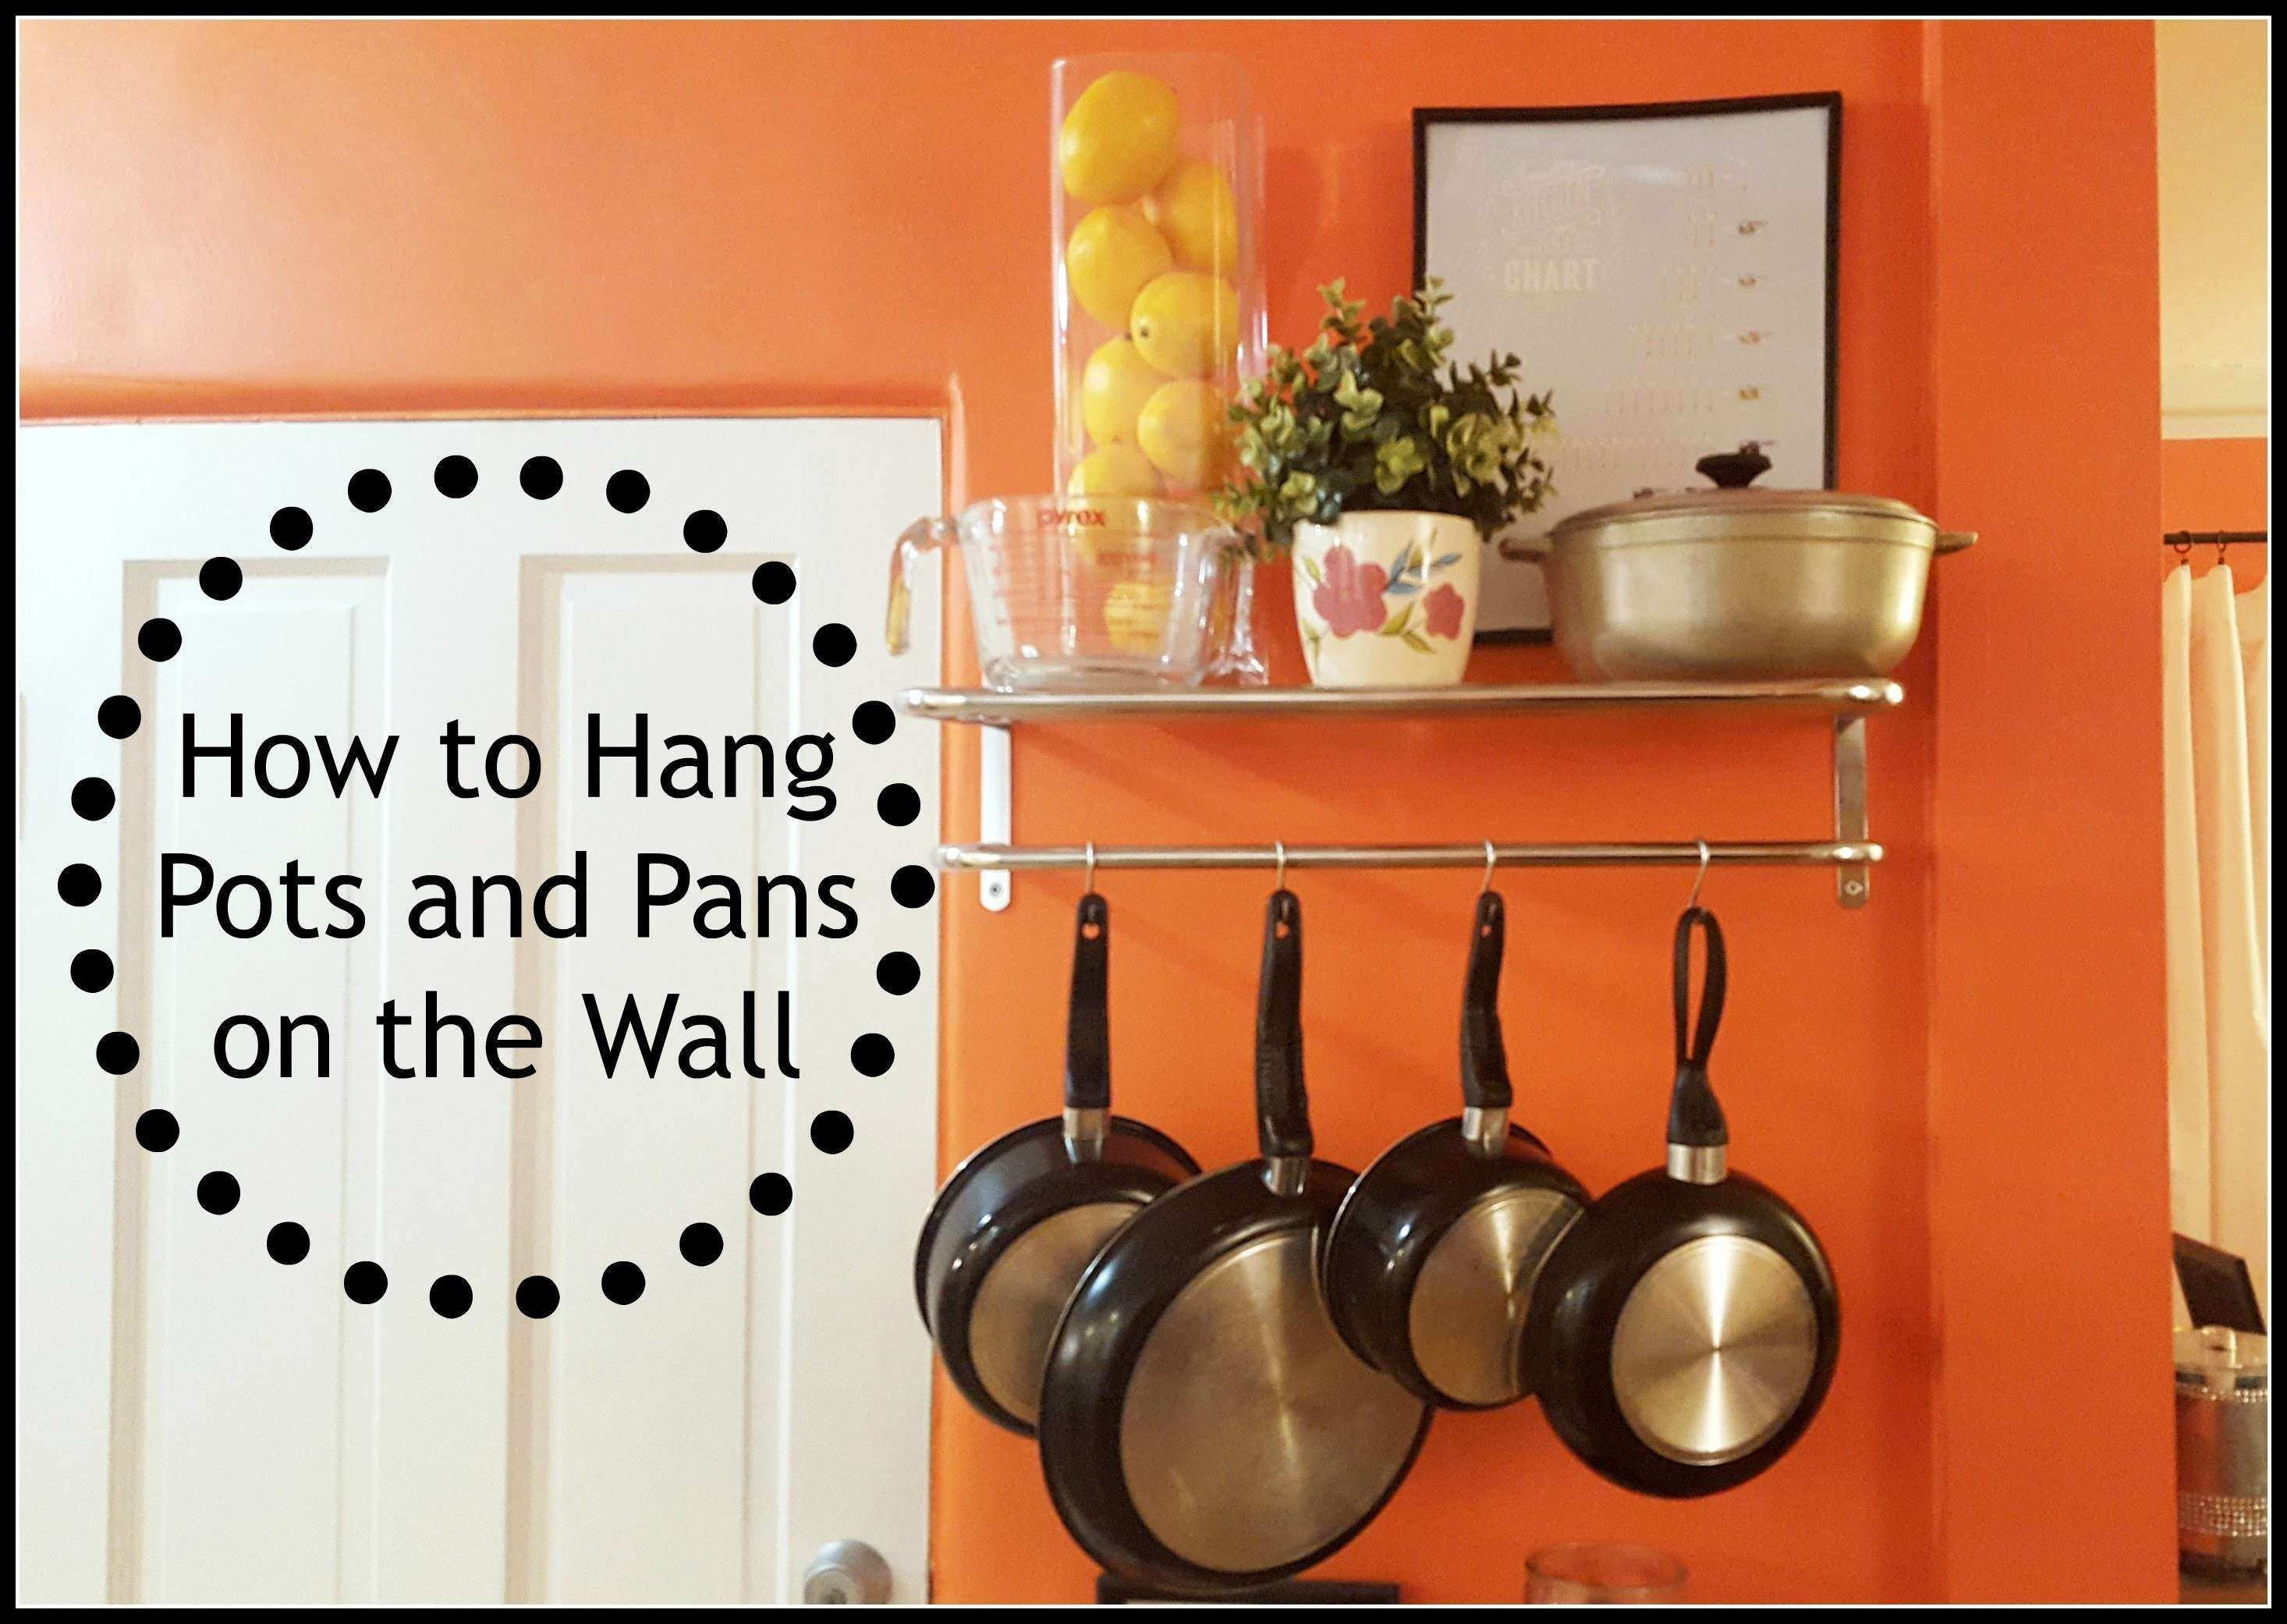 DIY How to Hang Pots and Pans on Wall UPDATED VIDEO